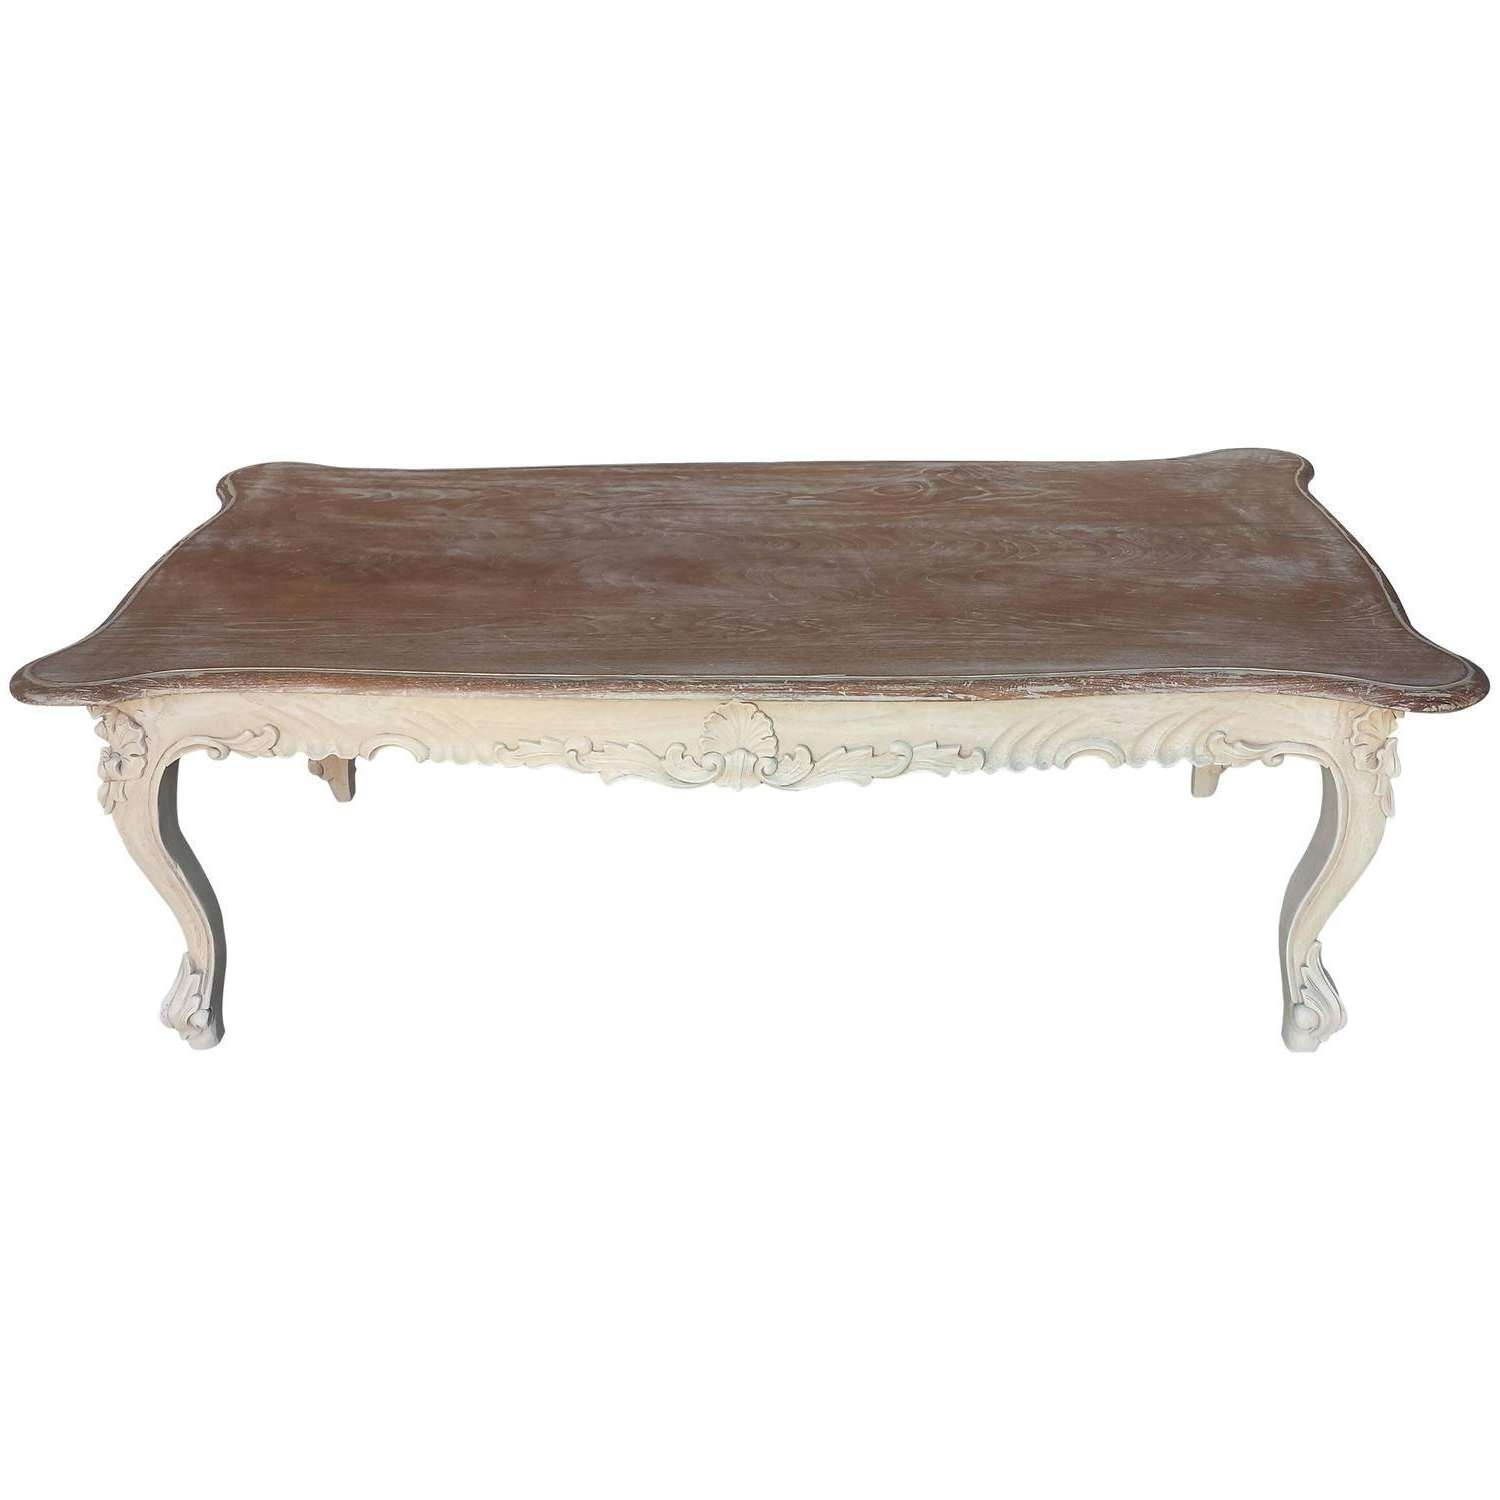 Coffee Tables : Image Of French Country Style Carved Coffee Table For 2018 Country French Coffee Tables (View 3 of 20)